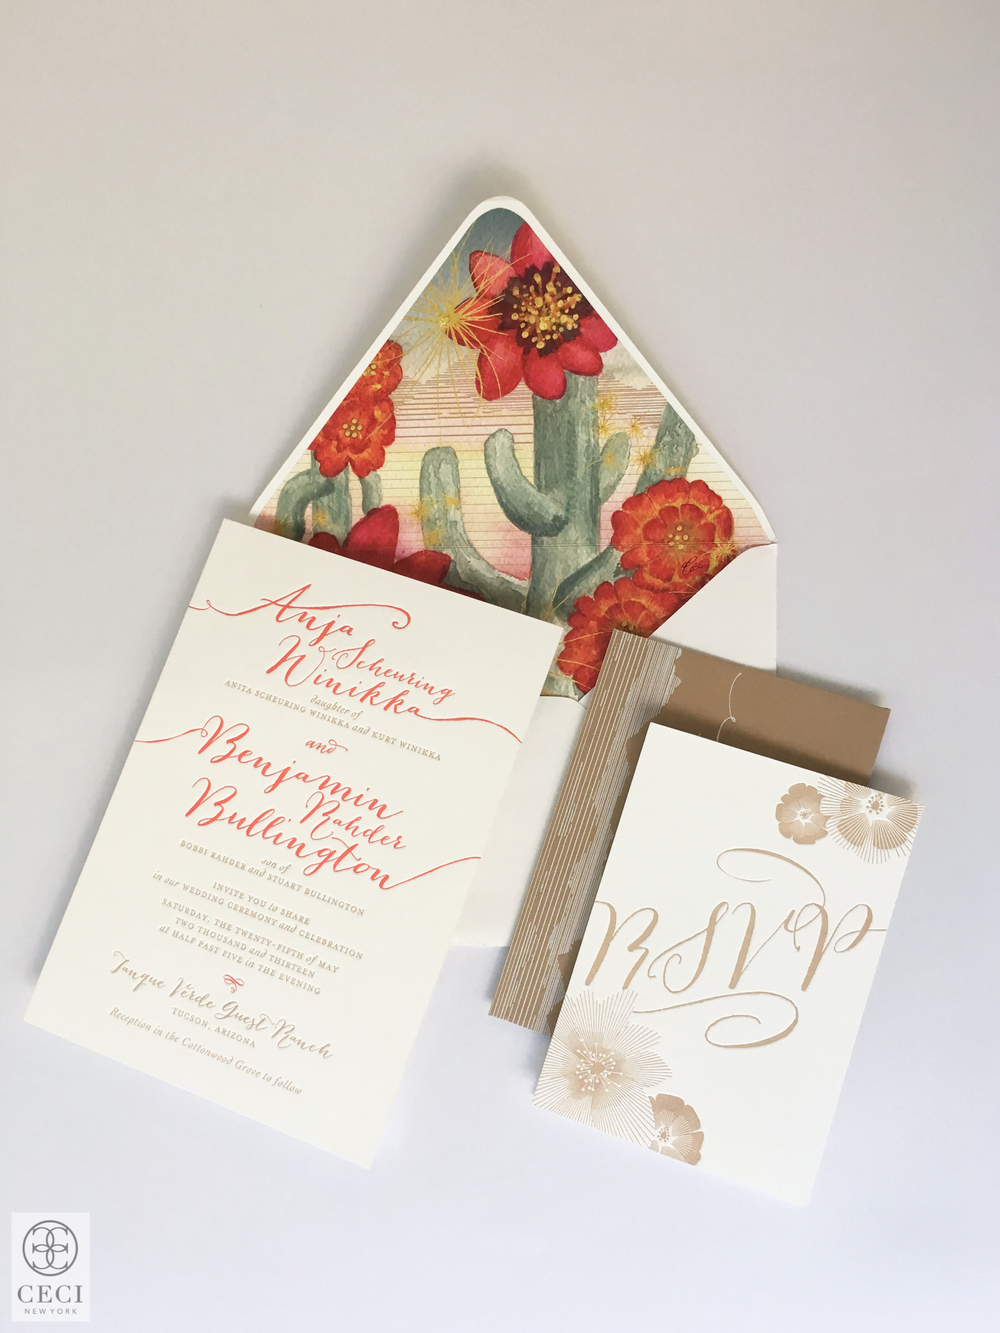 Ceci_New_York_Ceci_Style_Ceci_Johnson_Luxury_Lifestyle_Arizona_Wedding_Watercolor_Inspiration_Design_Custom_Couture_Personalized_Invitations_-15.jpg